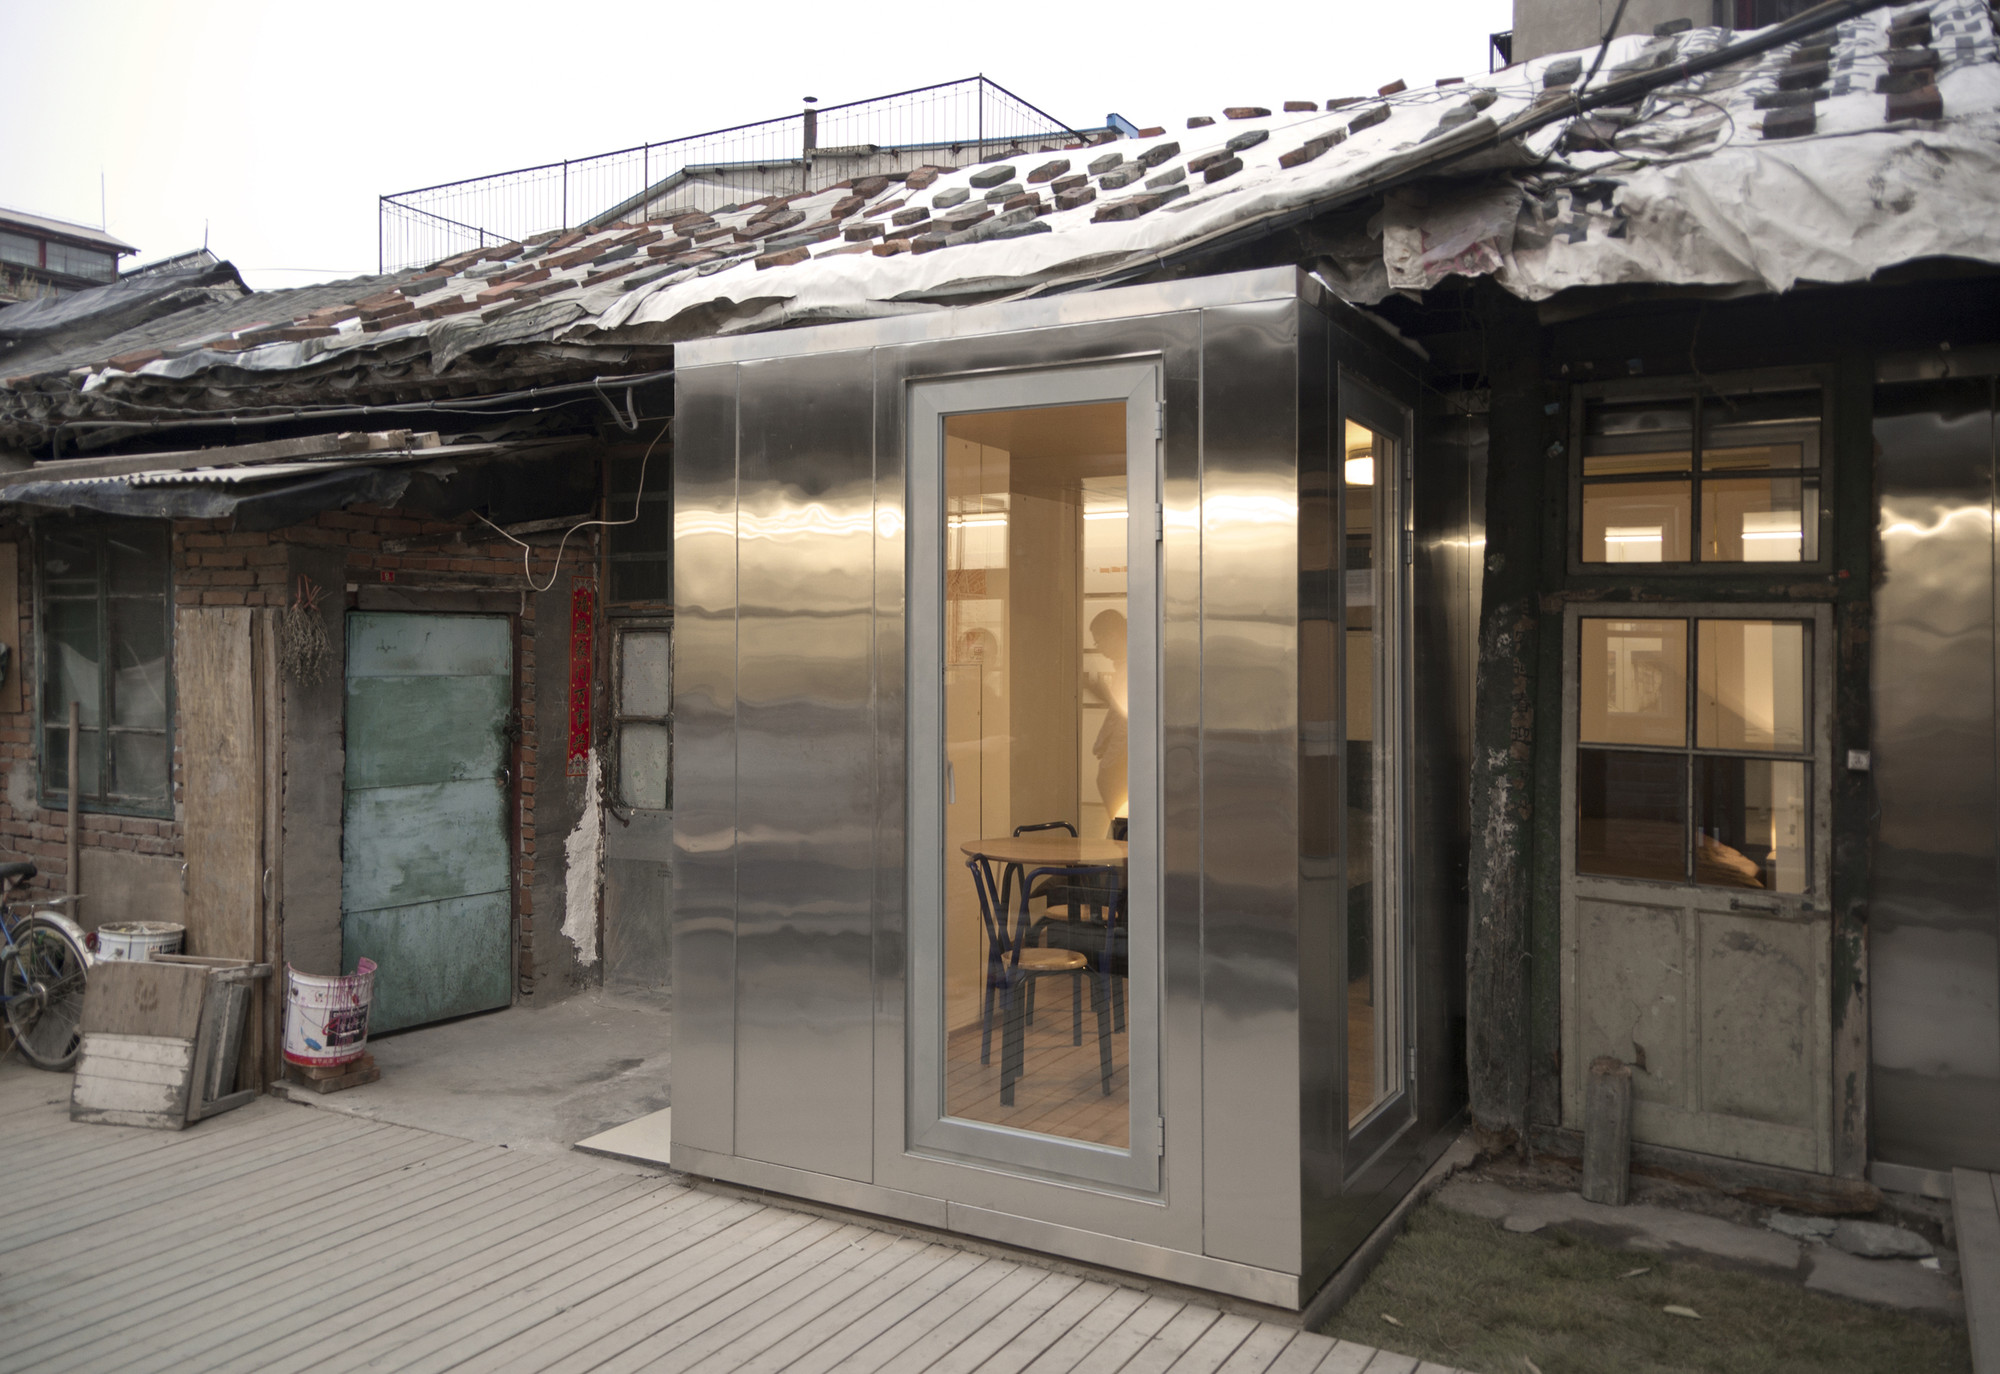 the courtyard house plugin / people's architecture office | archdaily